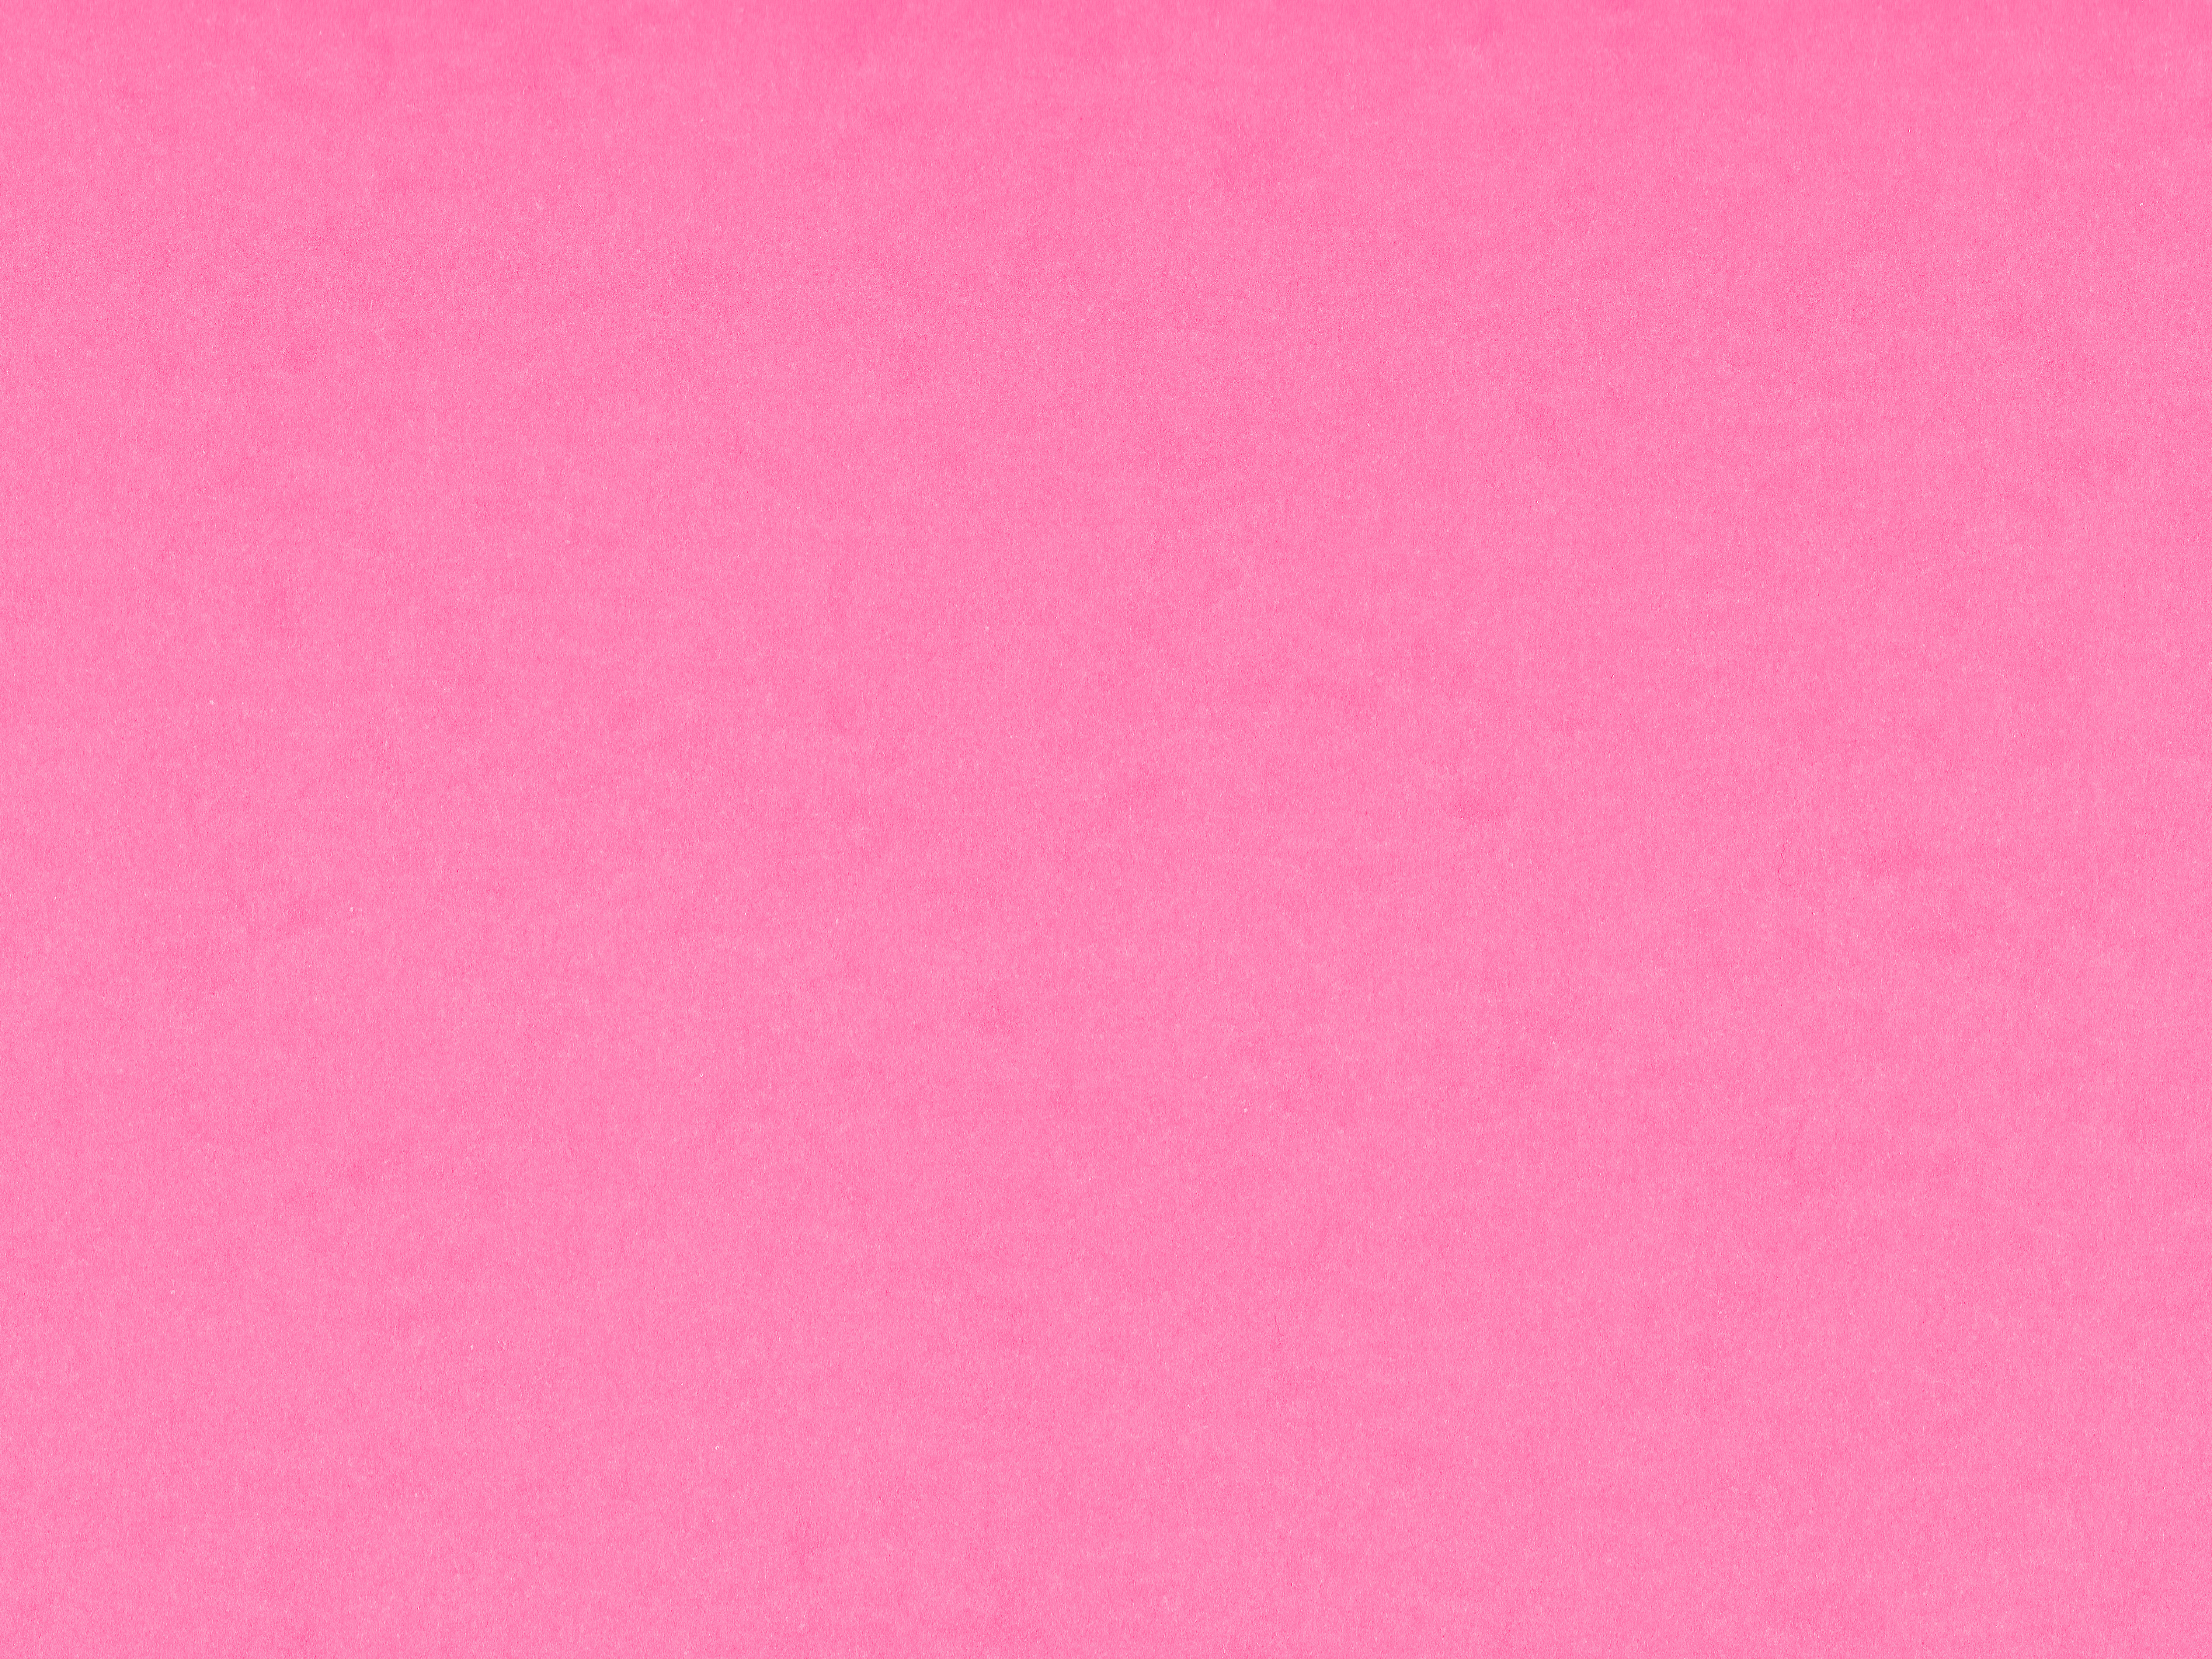 Pink Card Stock Paper Texture Picture Free Photograph